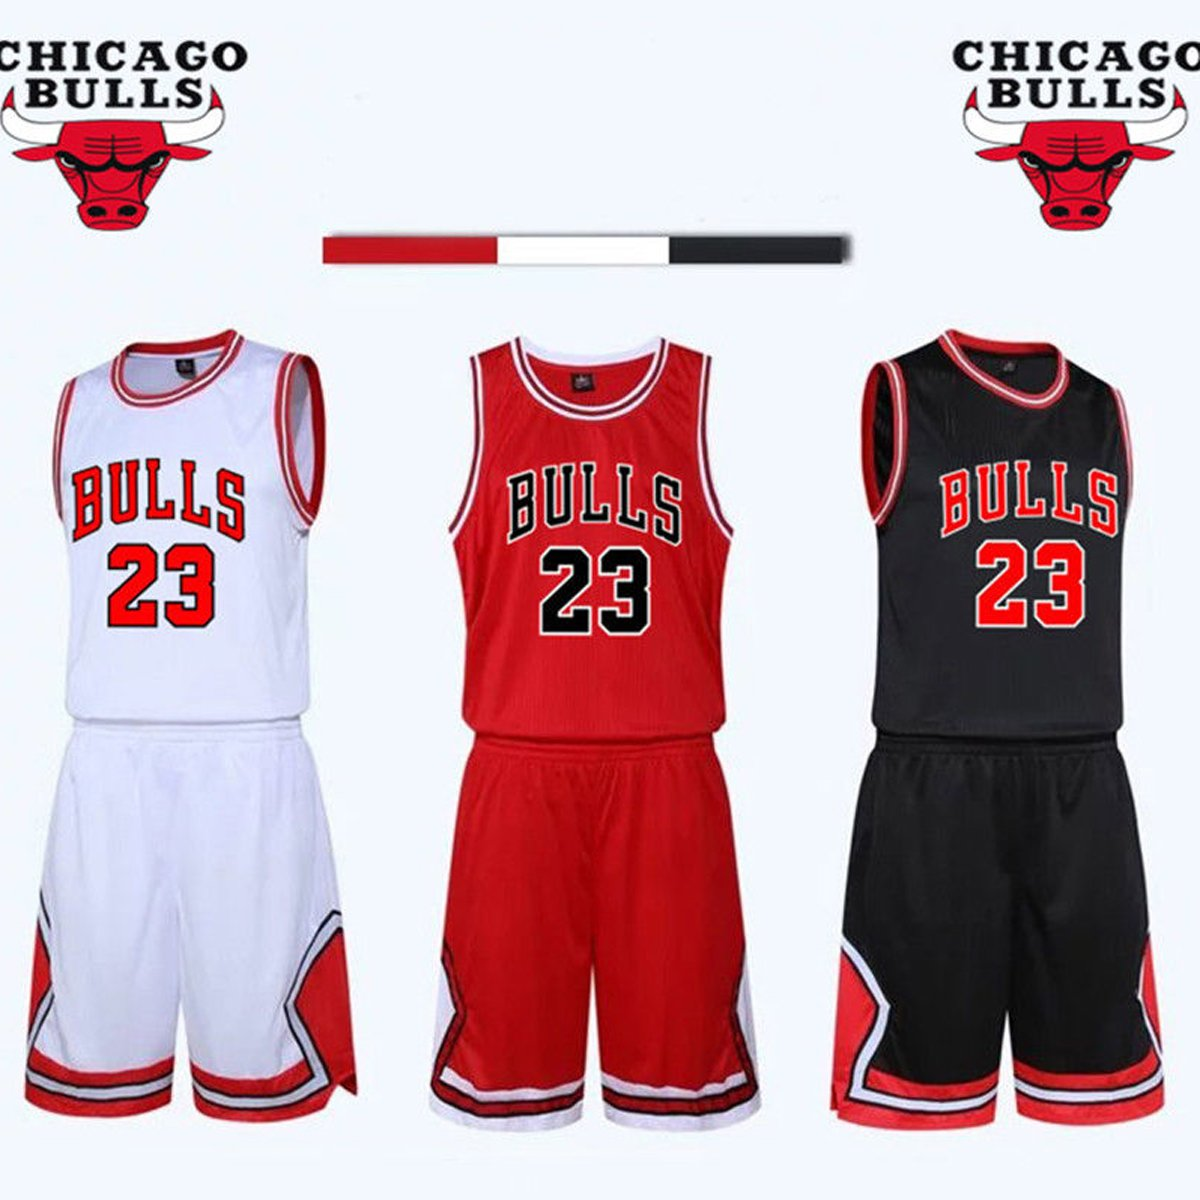 Kid Boy Mens NBA Michael Jordan  23 Chicago Bulls RETRO Basketball shorts  Summer Jerseys Basketball Uniform Top Short  Amazon.co.uk  Sports   Outdoors 87b13b898